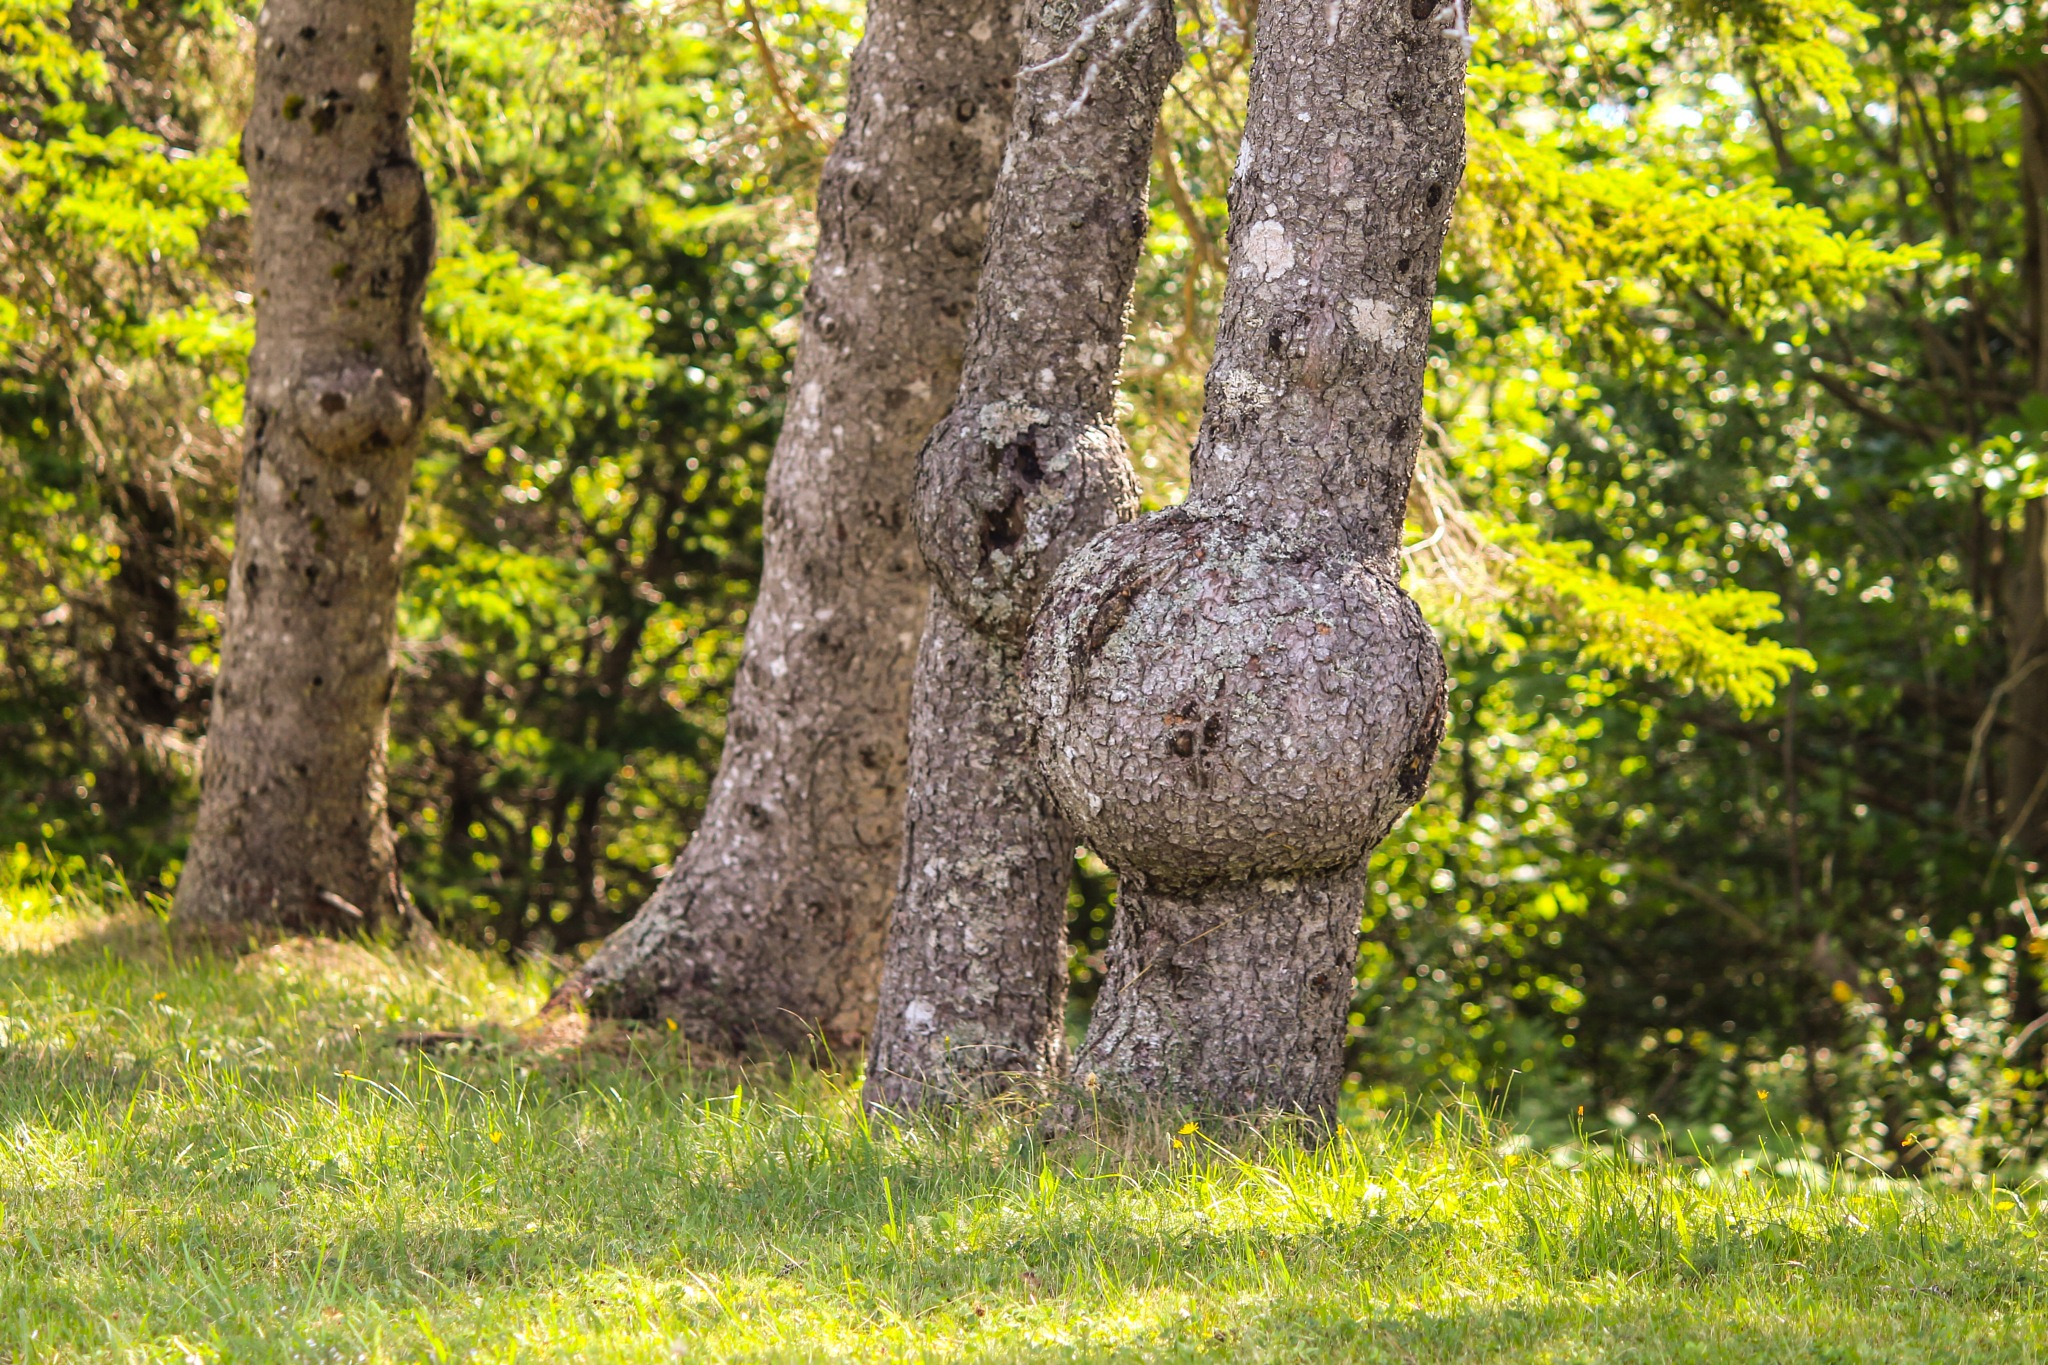 Knobbly trees by Terry Reynolds